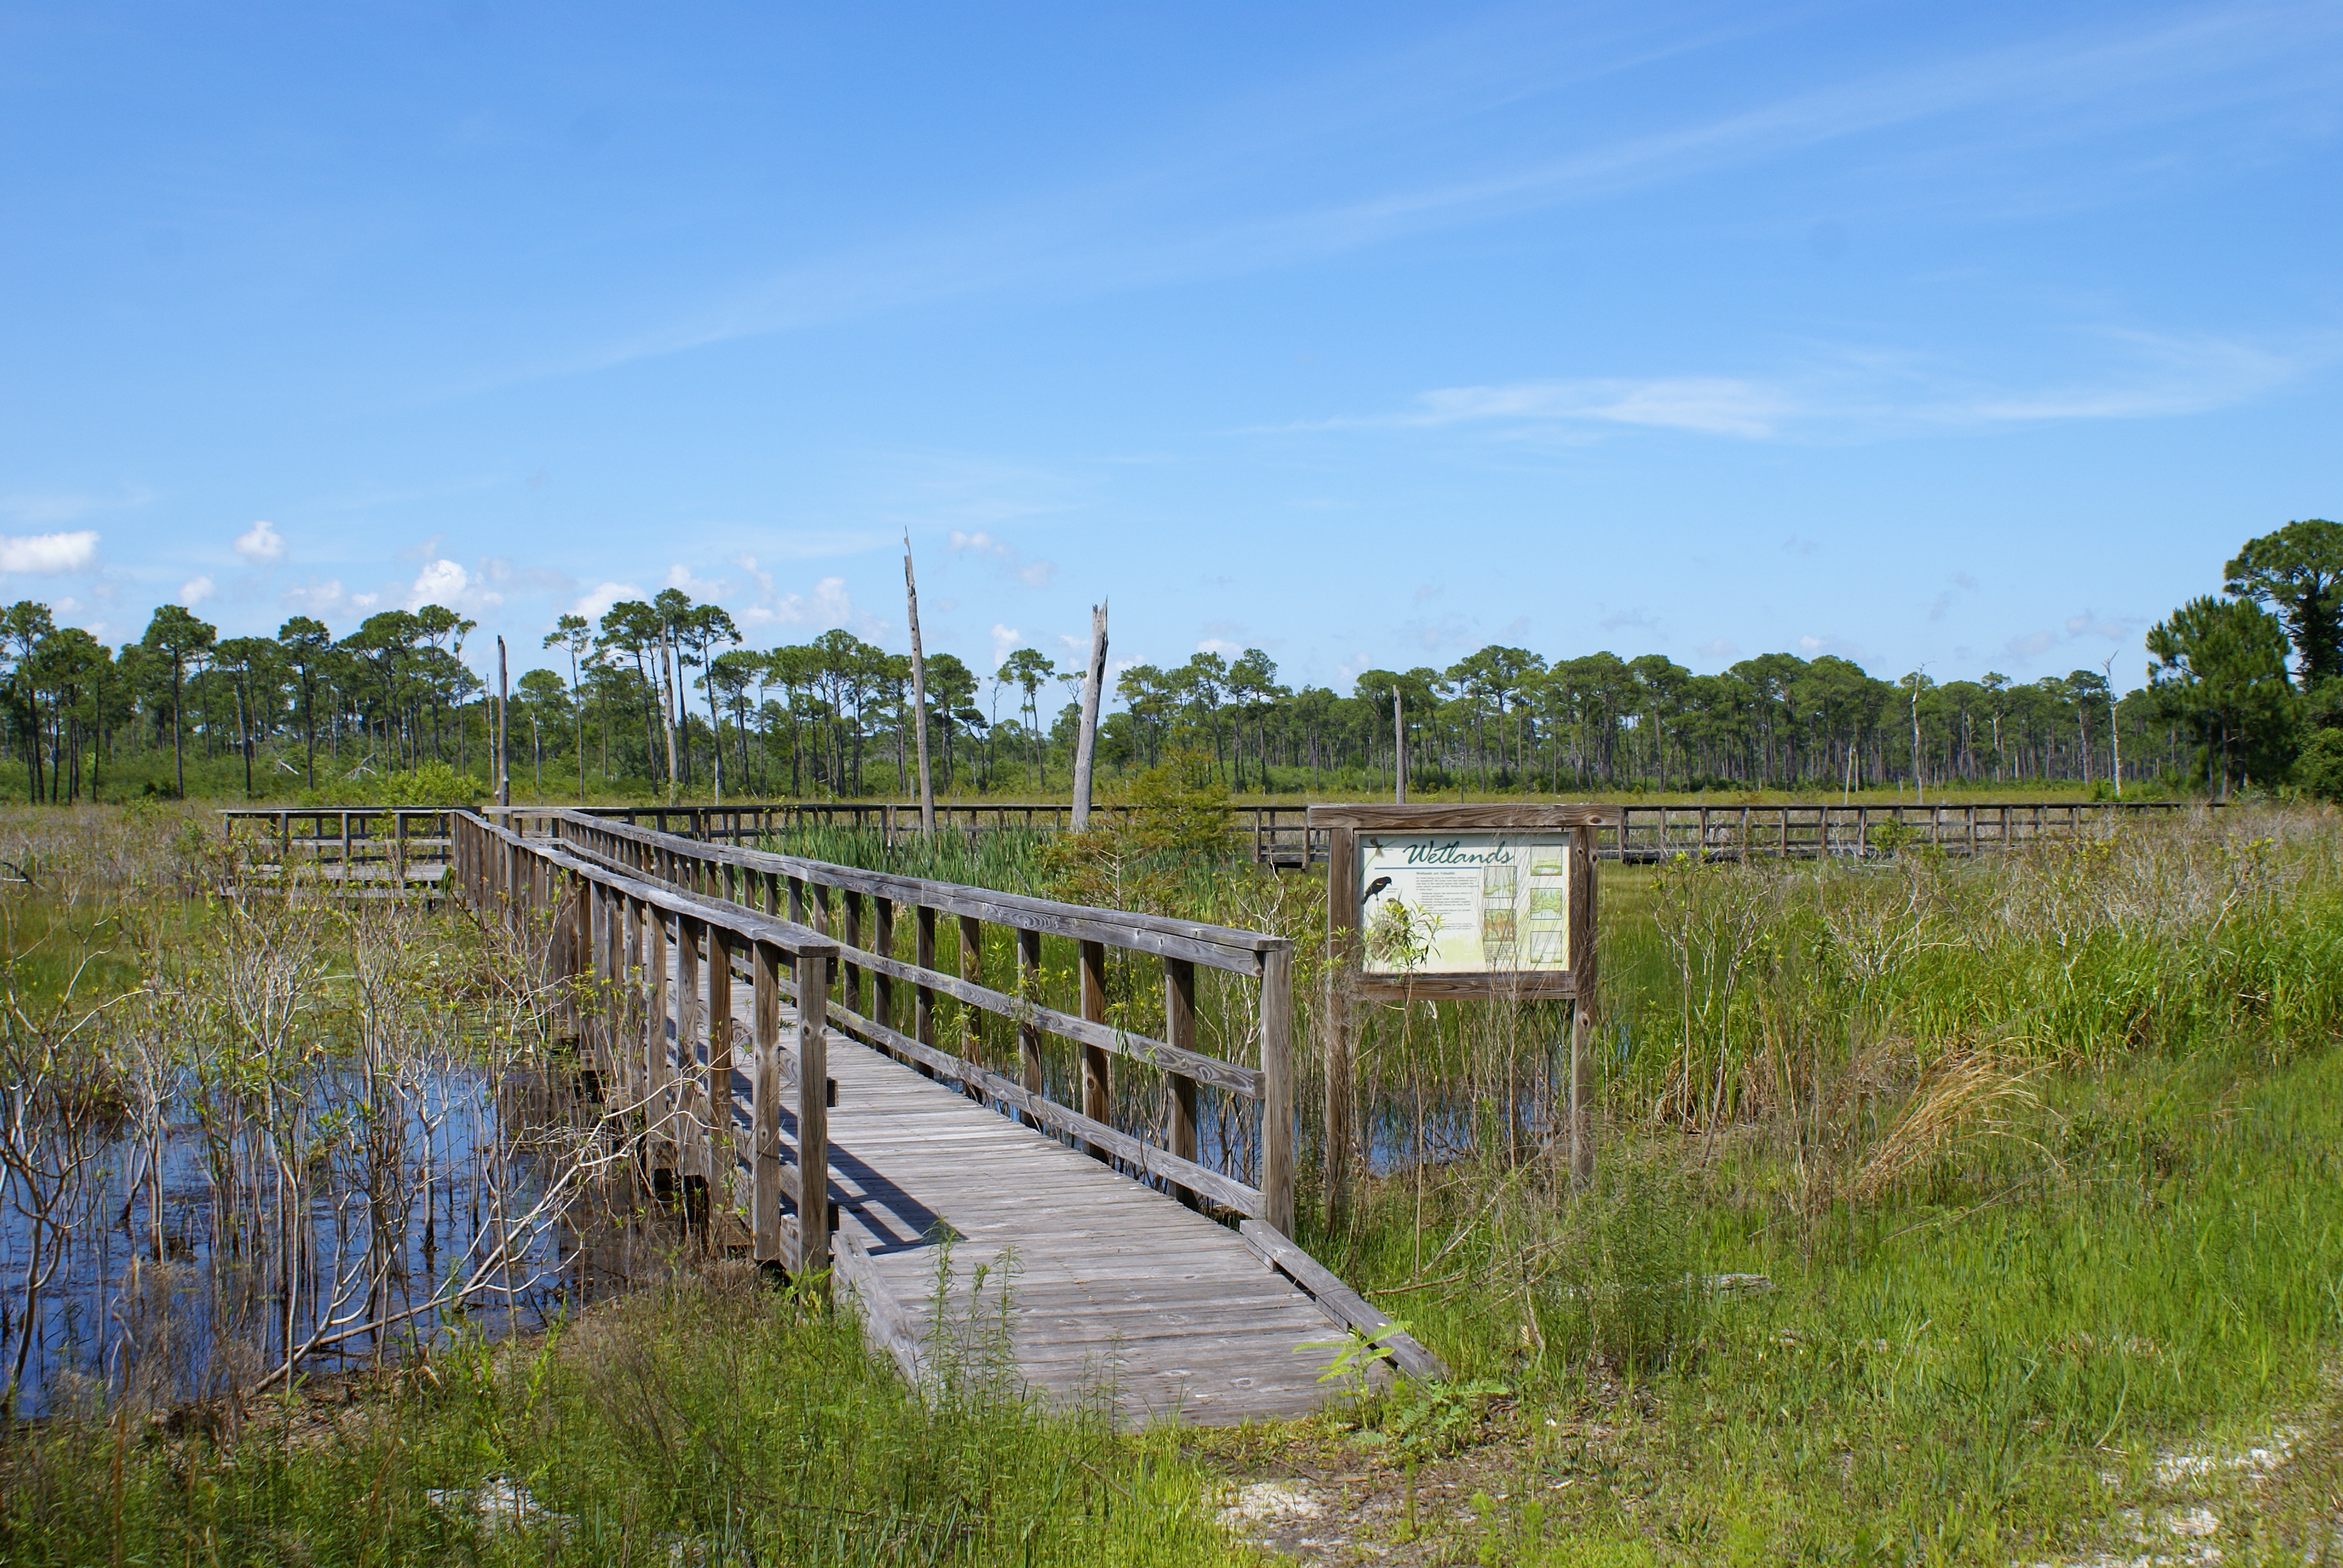 A boardwalk meandering through Alabama wetlands, with an interpretive sign.